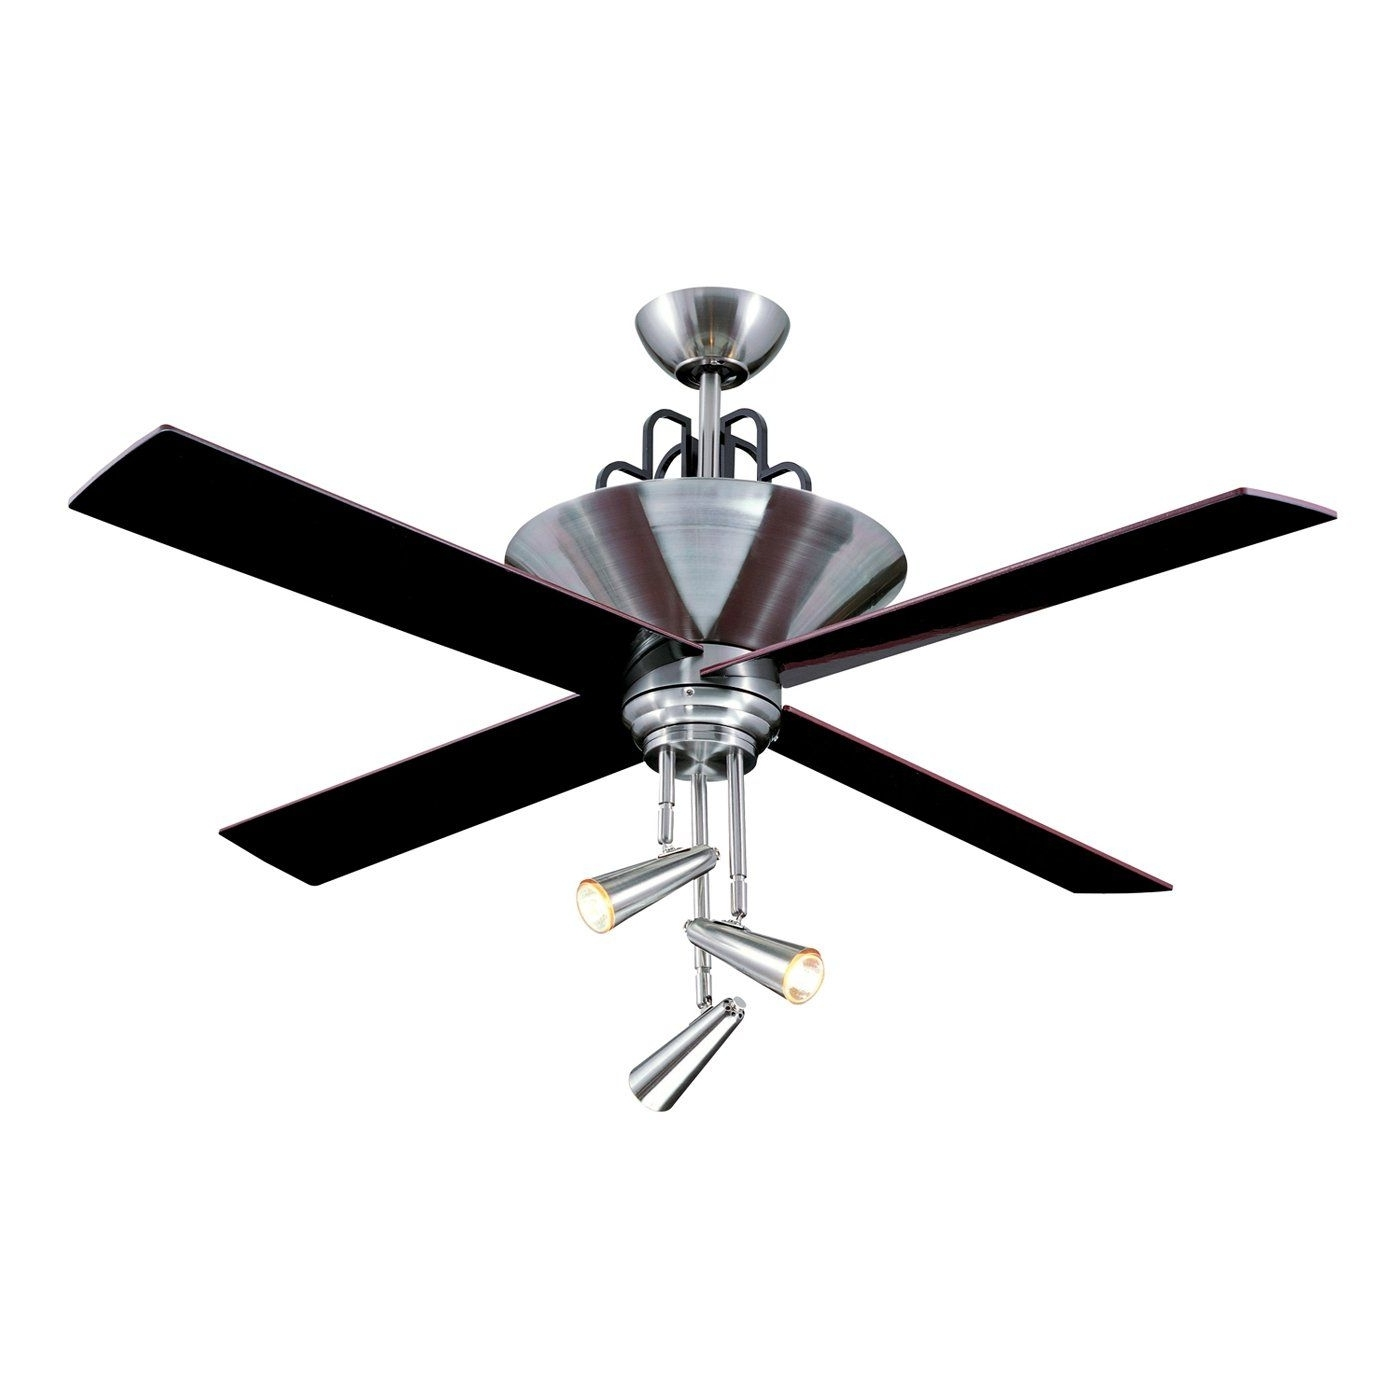 Preferred Ellington Fans E Gal52bc4gr 3 Light Galileo Ceiling Fan, Black Regarding Ellington Outdoor Ceiling Fans (View 11 of 20)